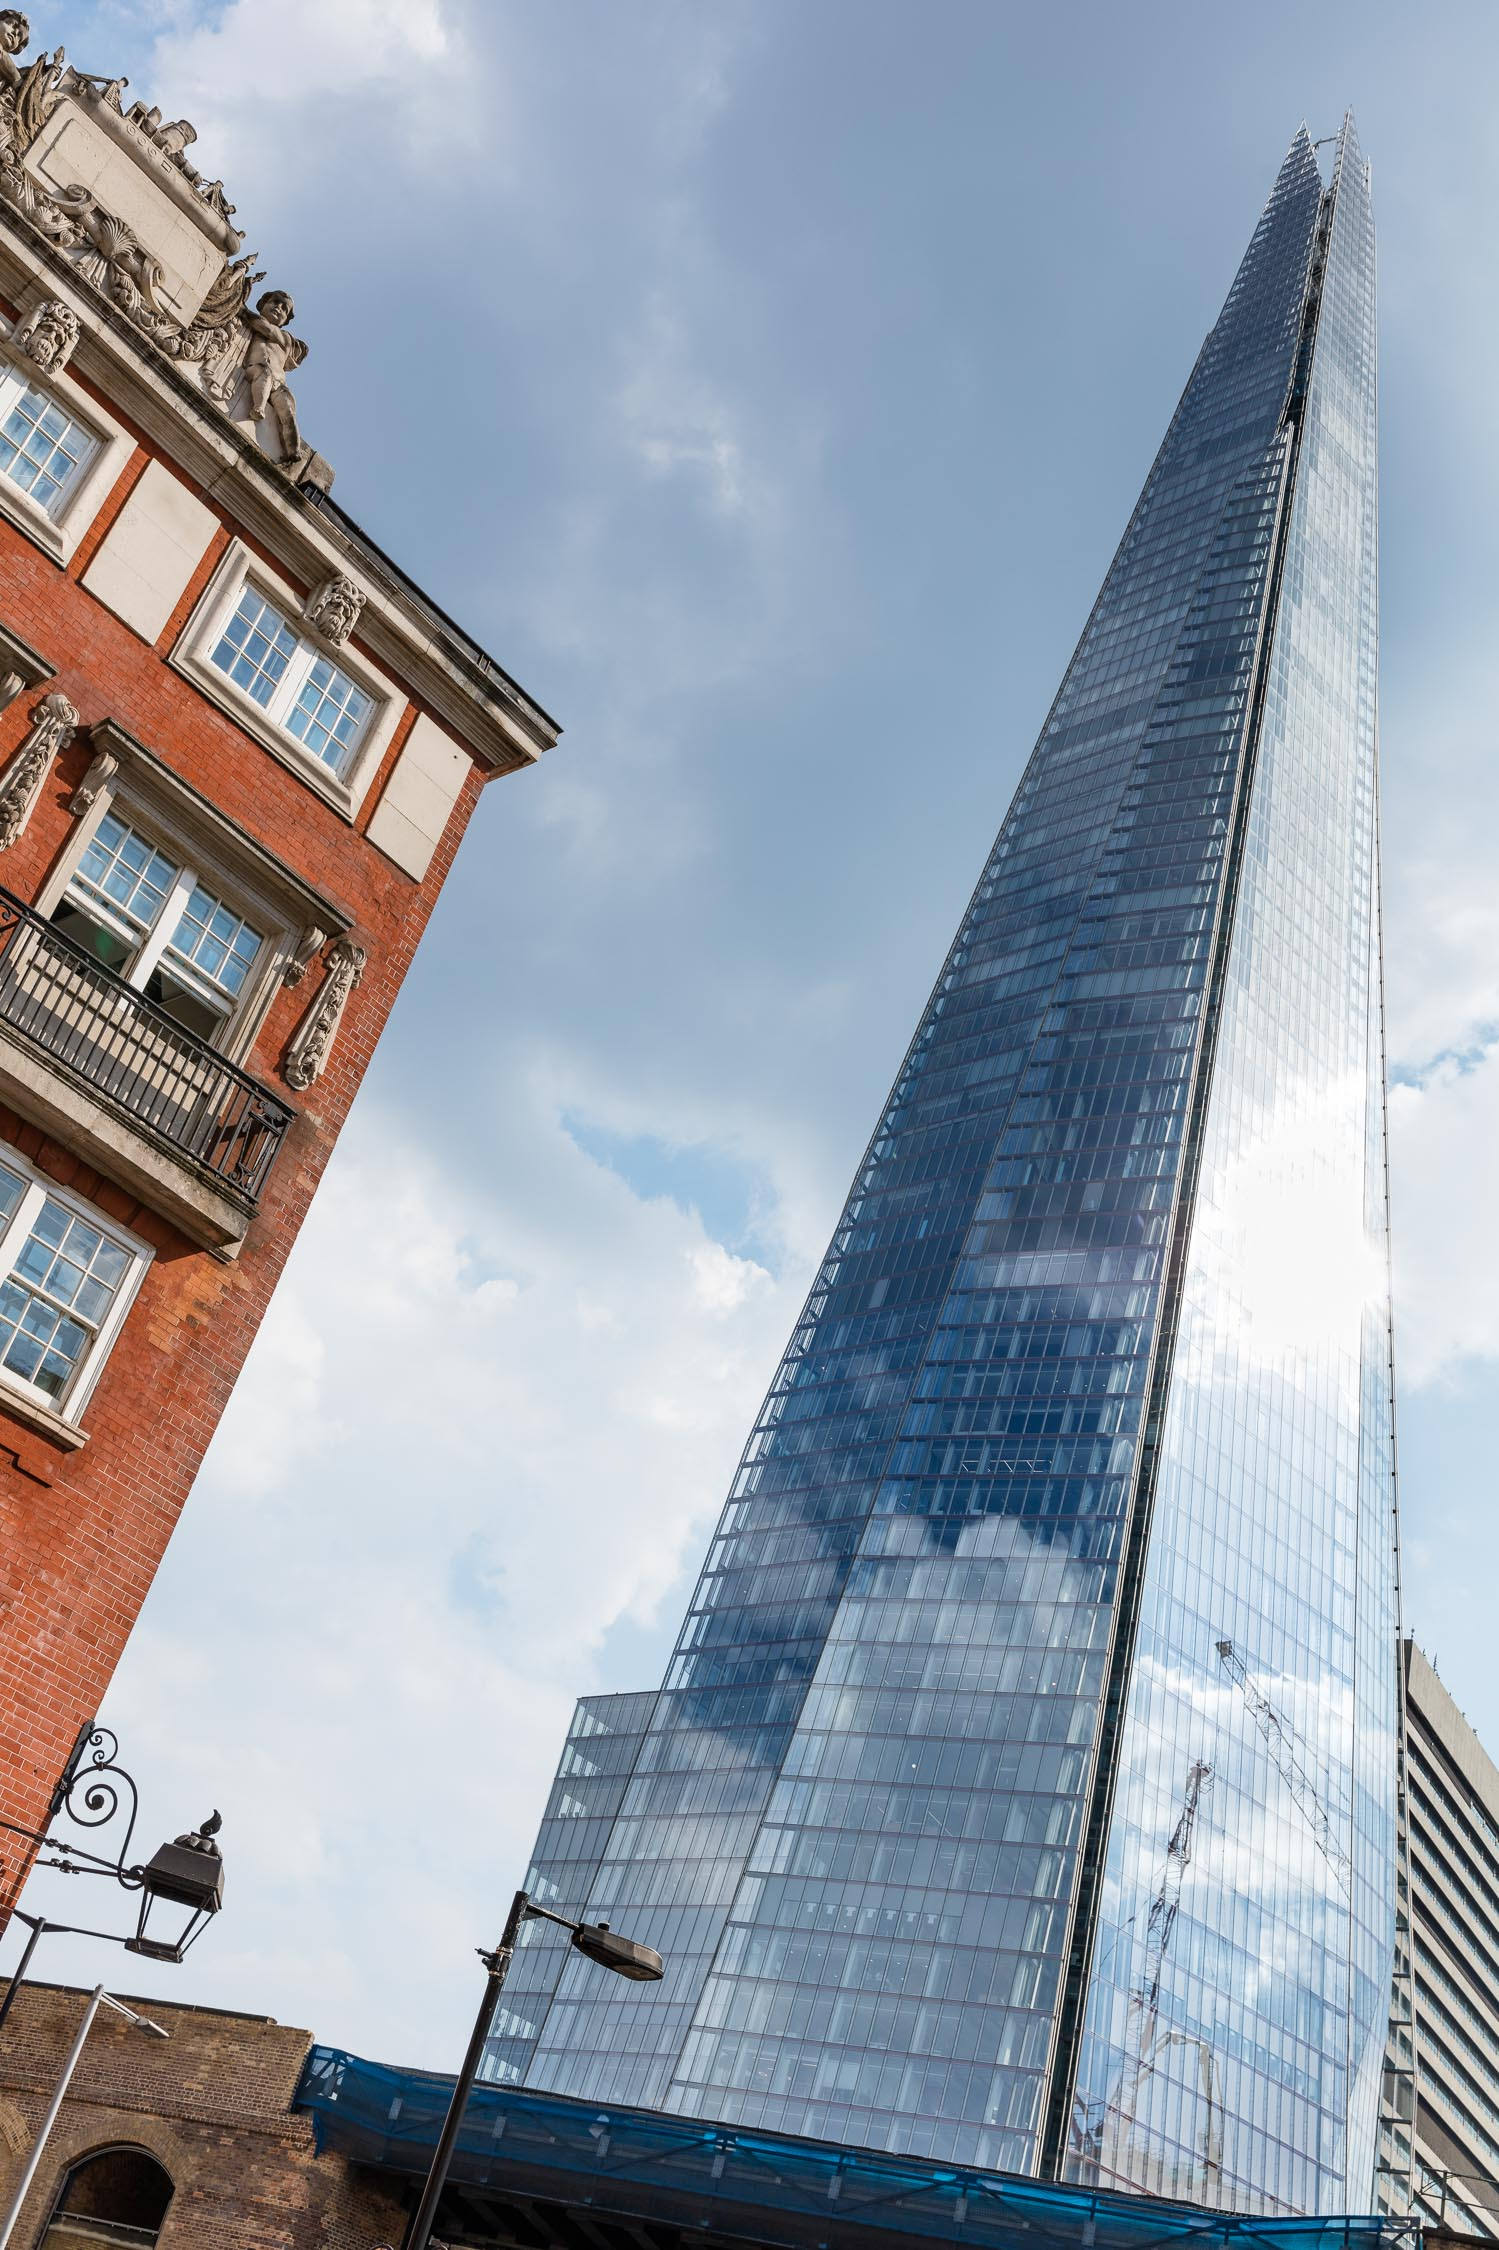 The Shard in London. For more info about this iconic building, click here:  The Shard .